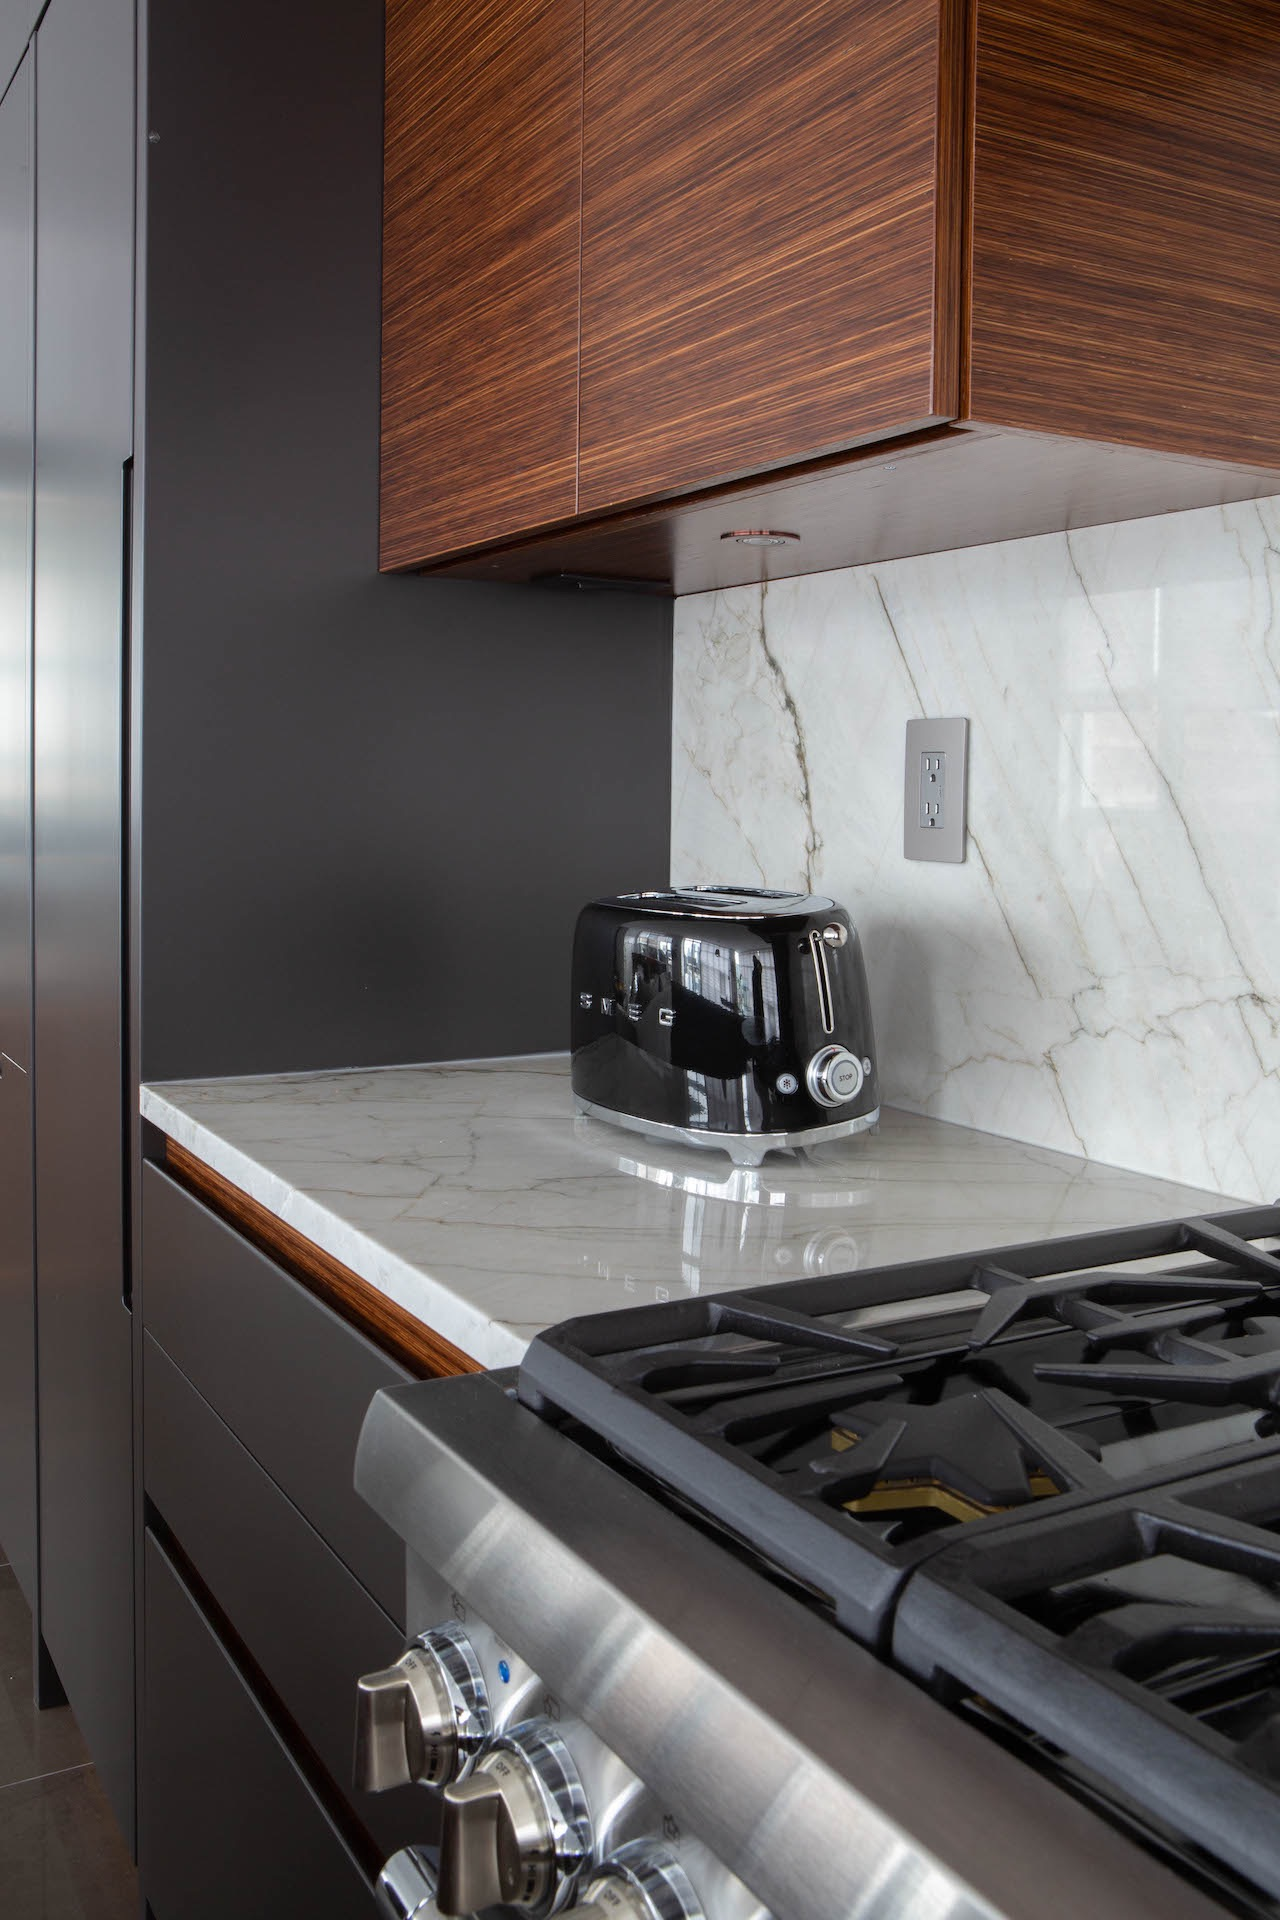 Marble counter with toaster and stove